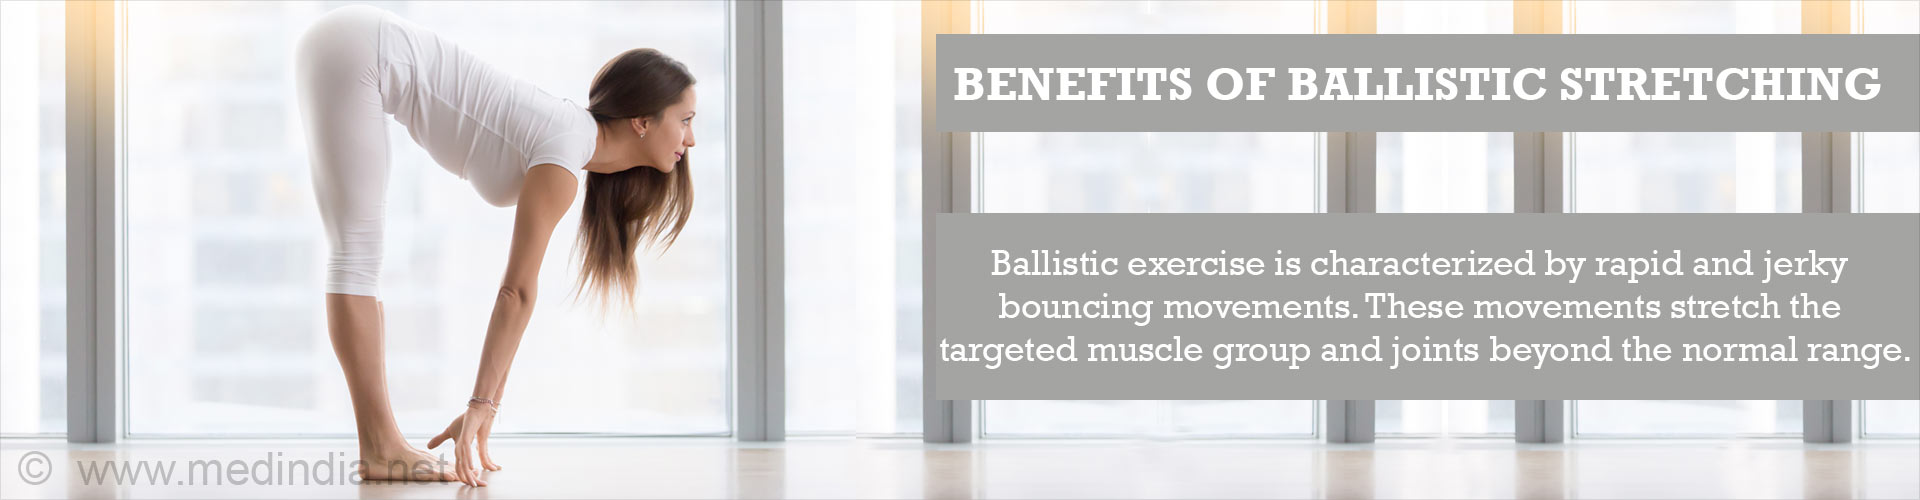 Benefits of Ballistic Stretching: Ballistic exercise is characterized by rapid and jerky bouncing movements. These movements stretch the targeted muscle group and joints beyond the normal range